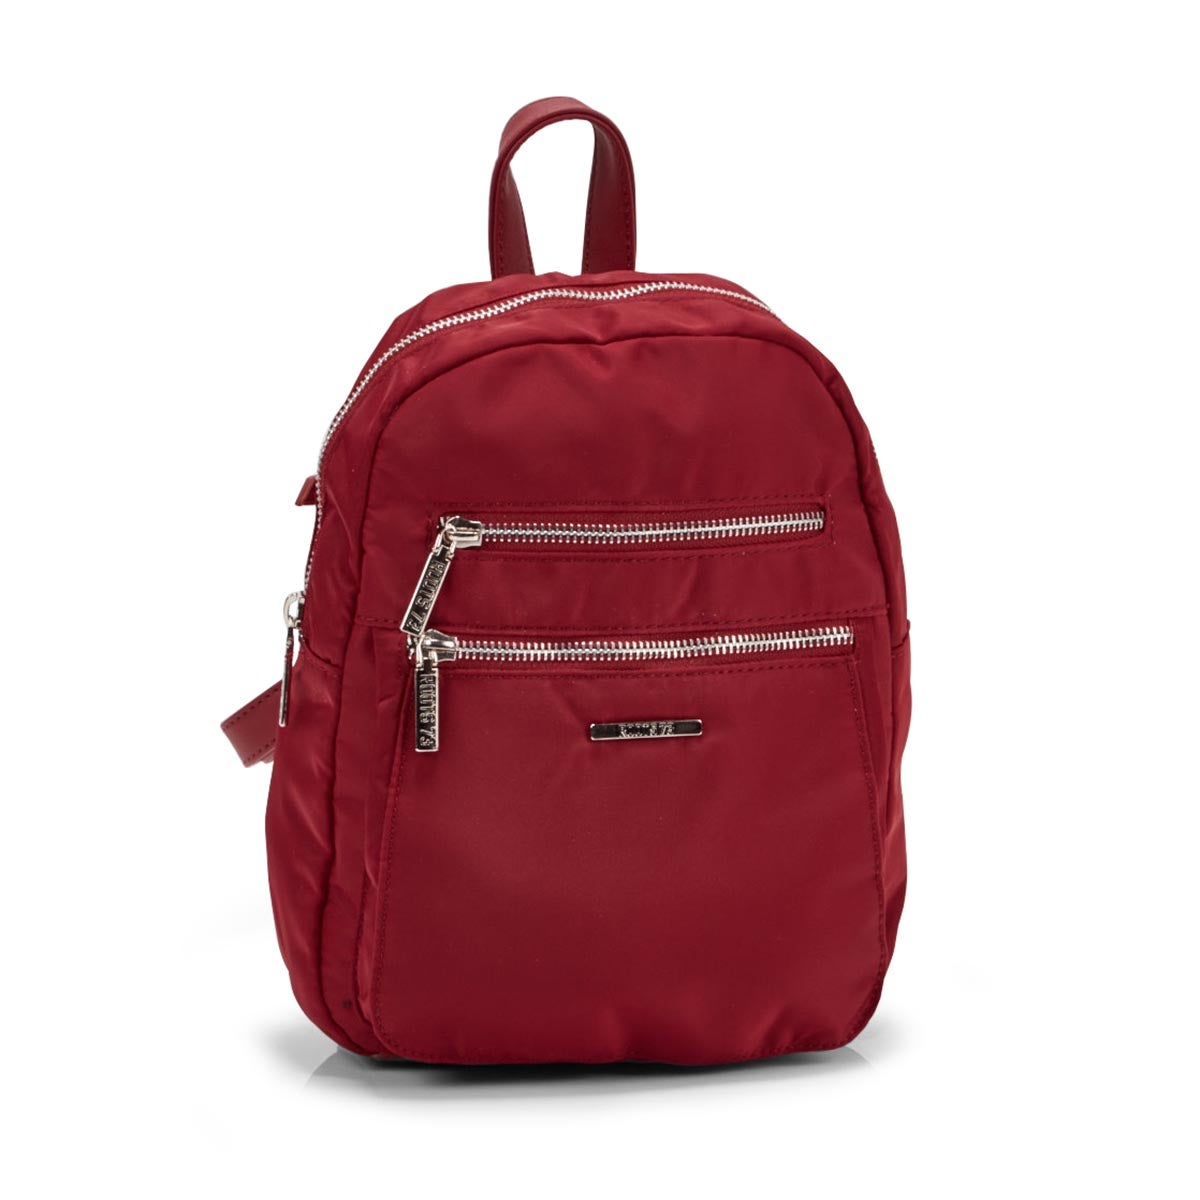 Women's R5191 red mini backpack